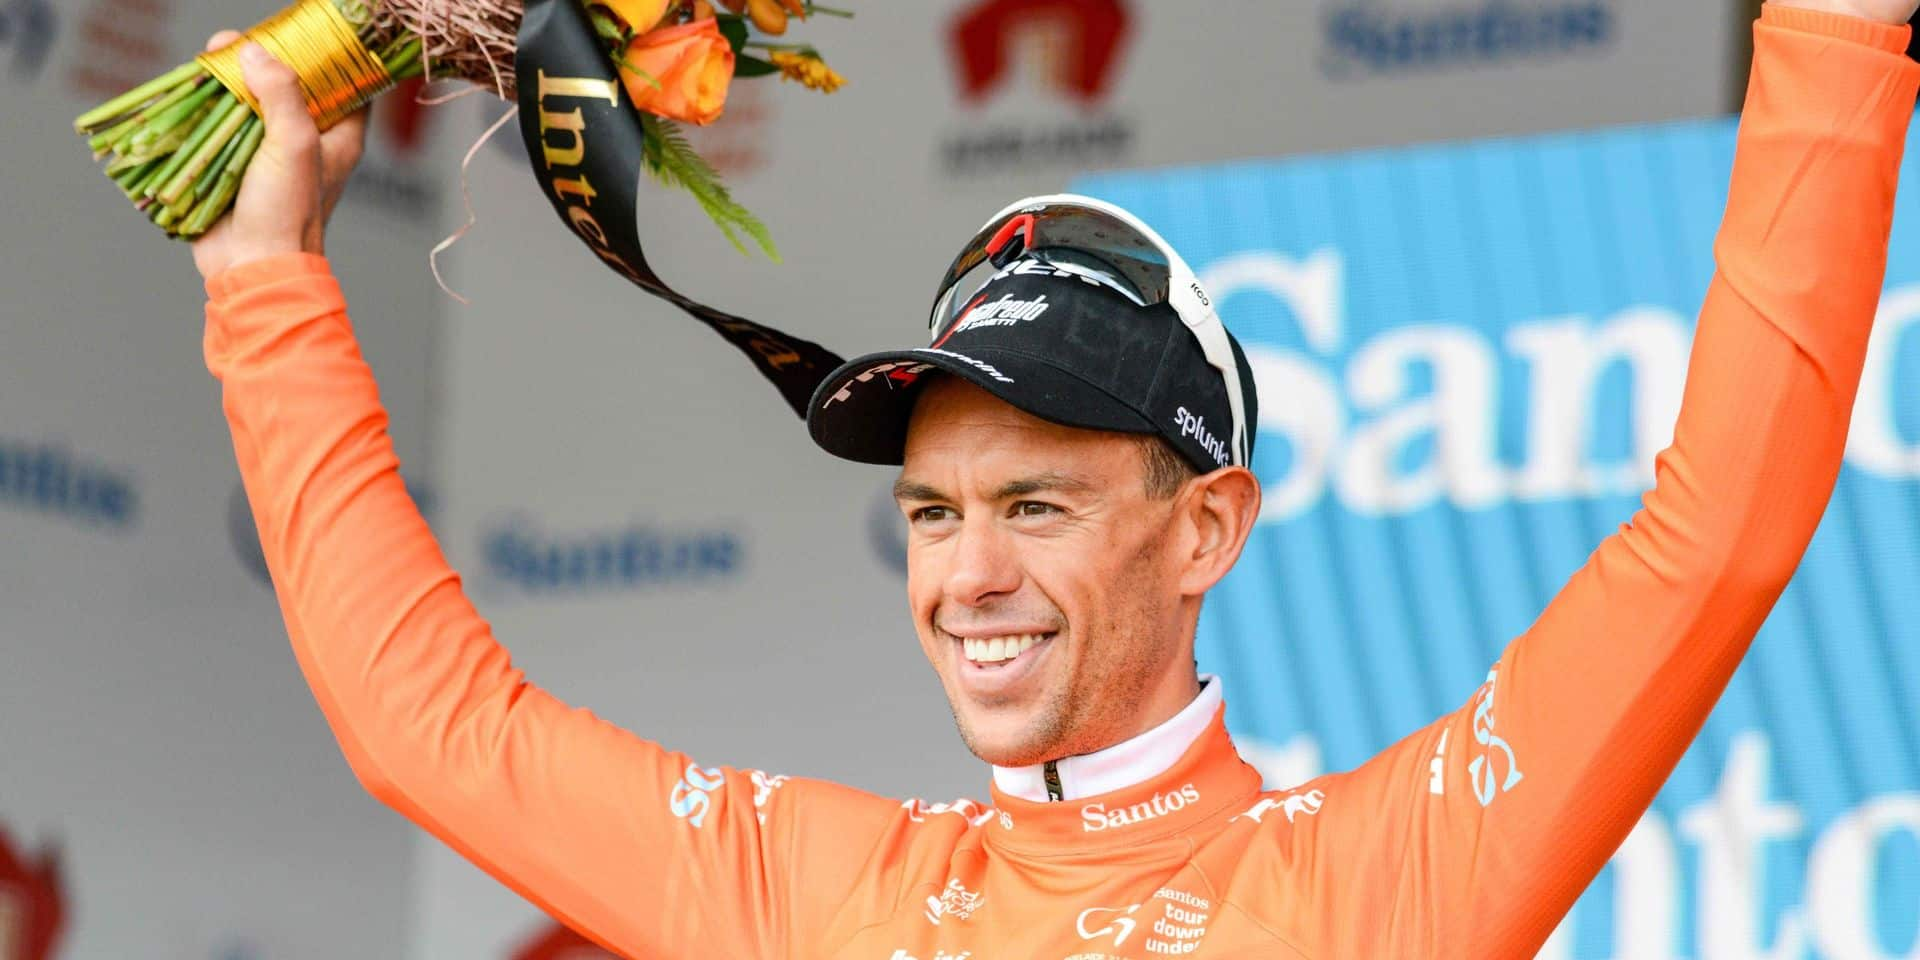 Tour Down Under: Richie Porte s'adjuge la 3e étape